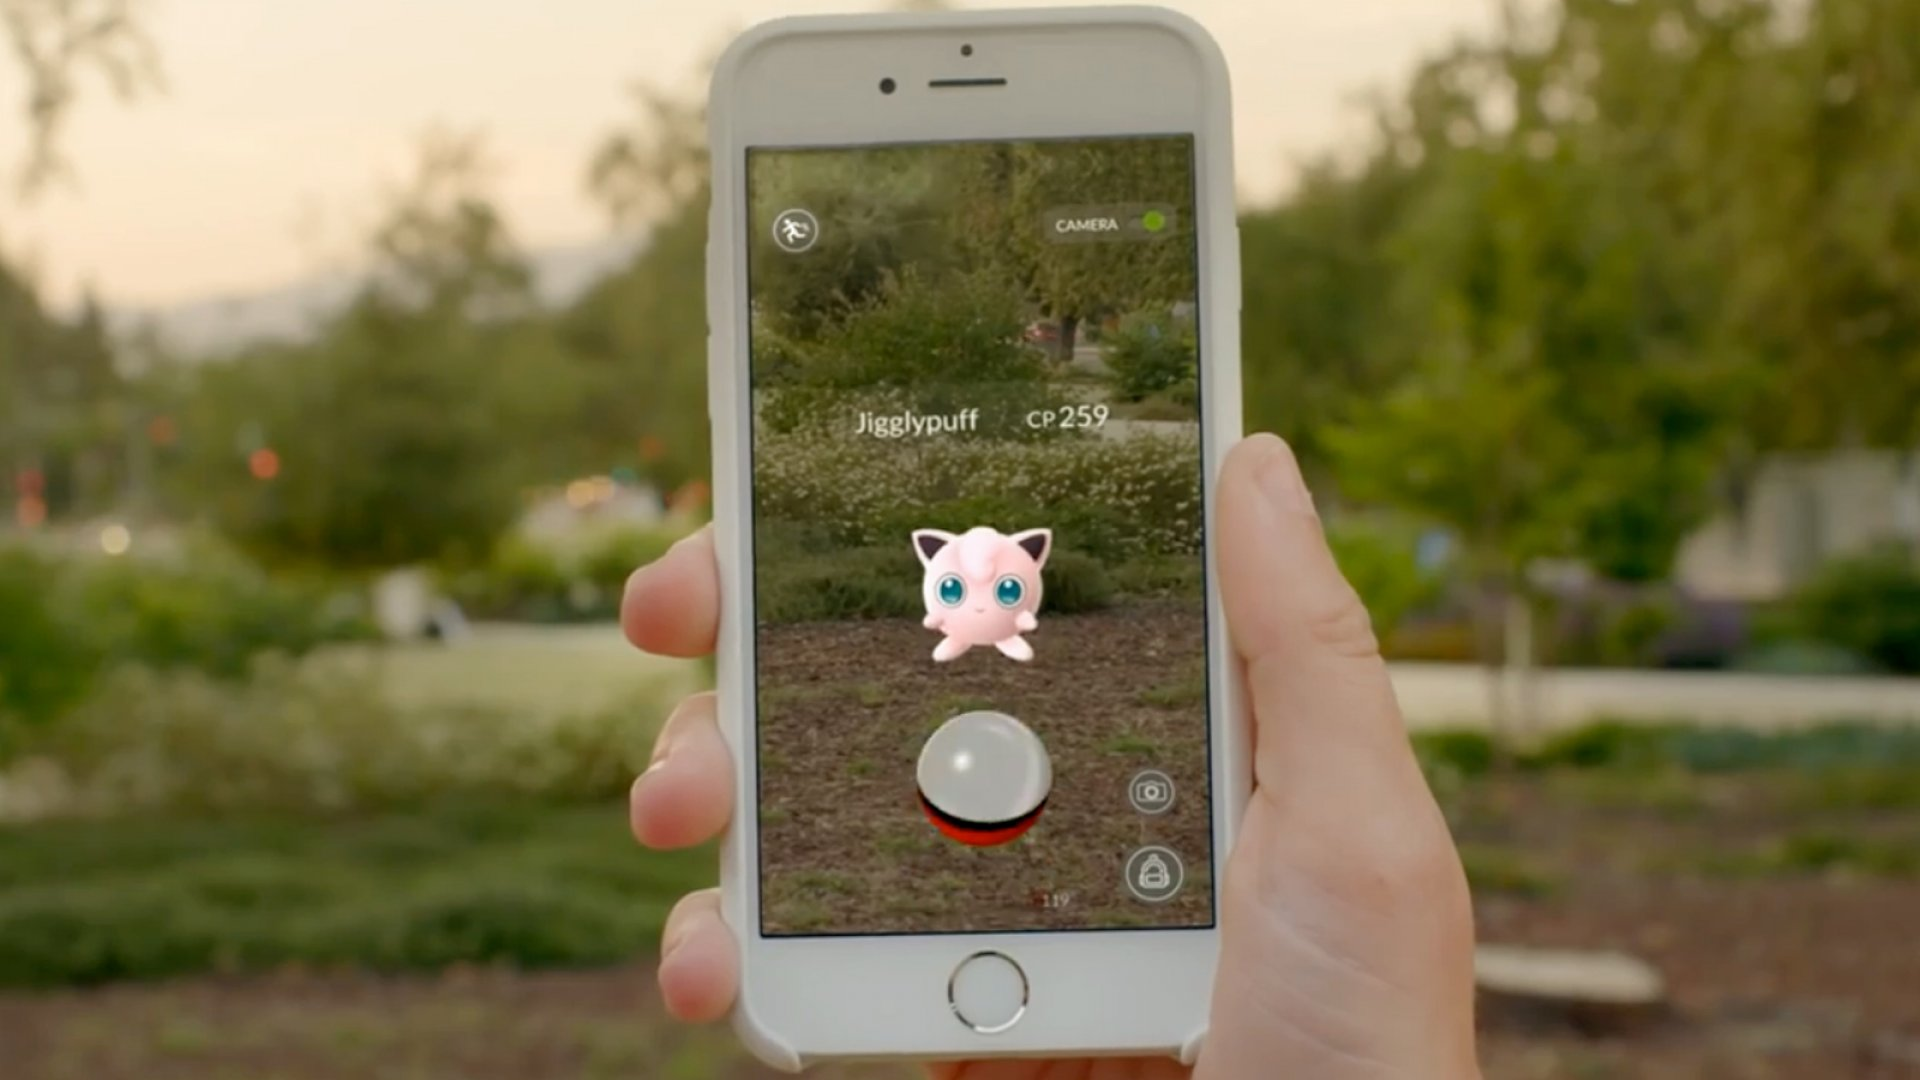 How Businesses Are Cashing In on the Pokemon Go Craze